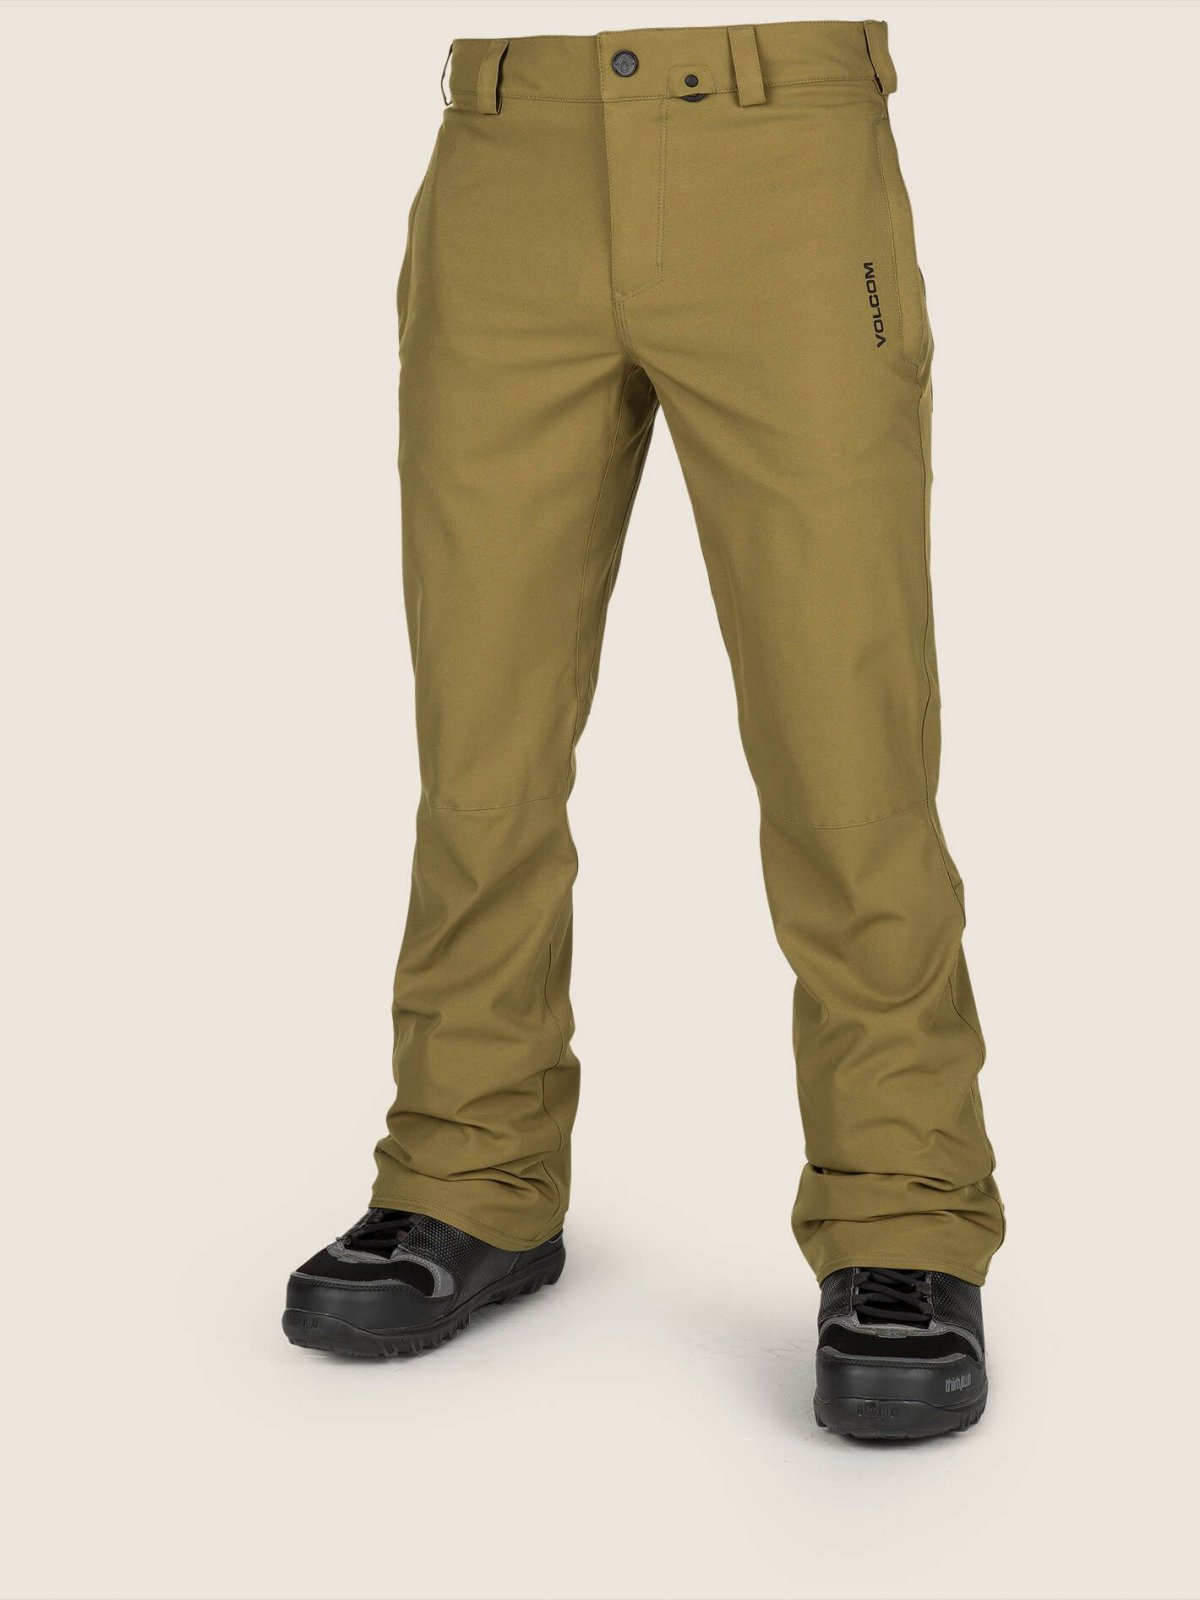 VOLCOM KLOCKER TIGHT PANT